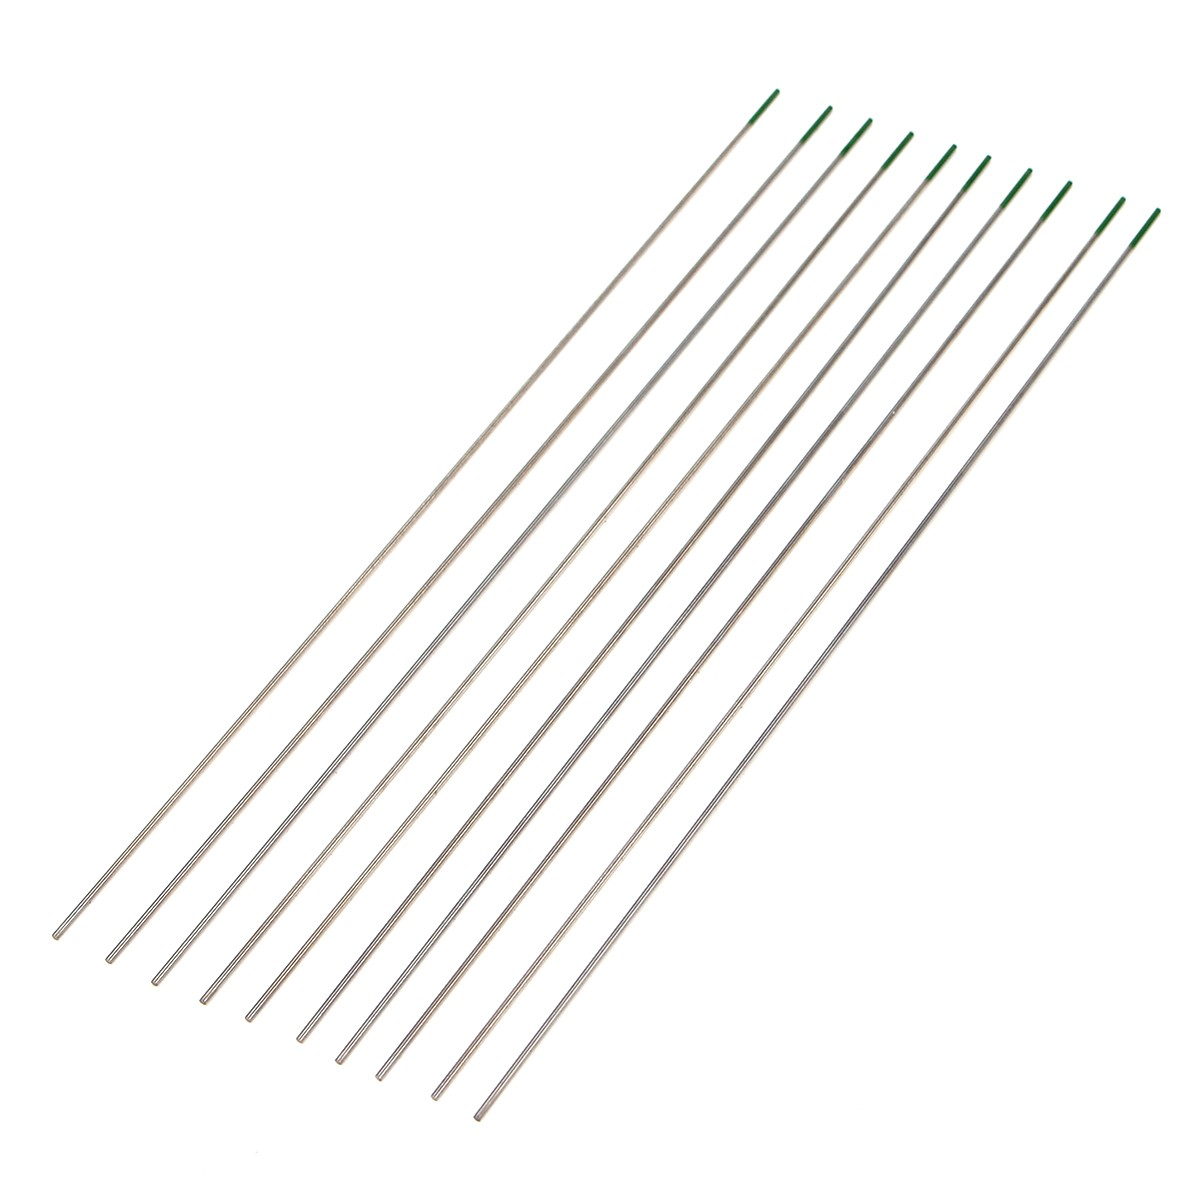 10Pcs 1mm x 175mm Green Tip Pure Tungsten Electrode For